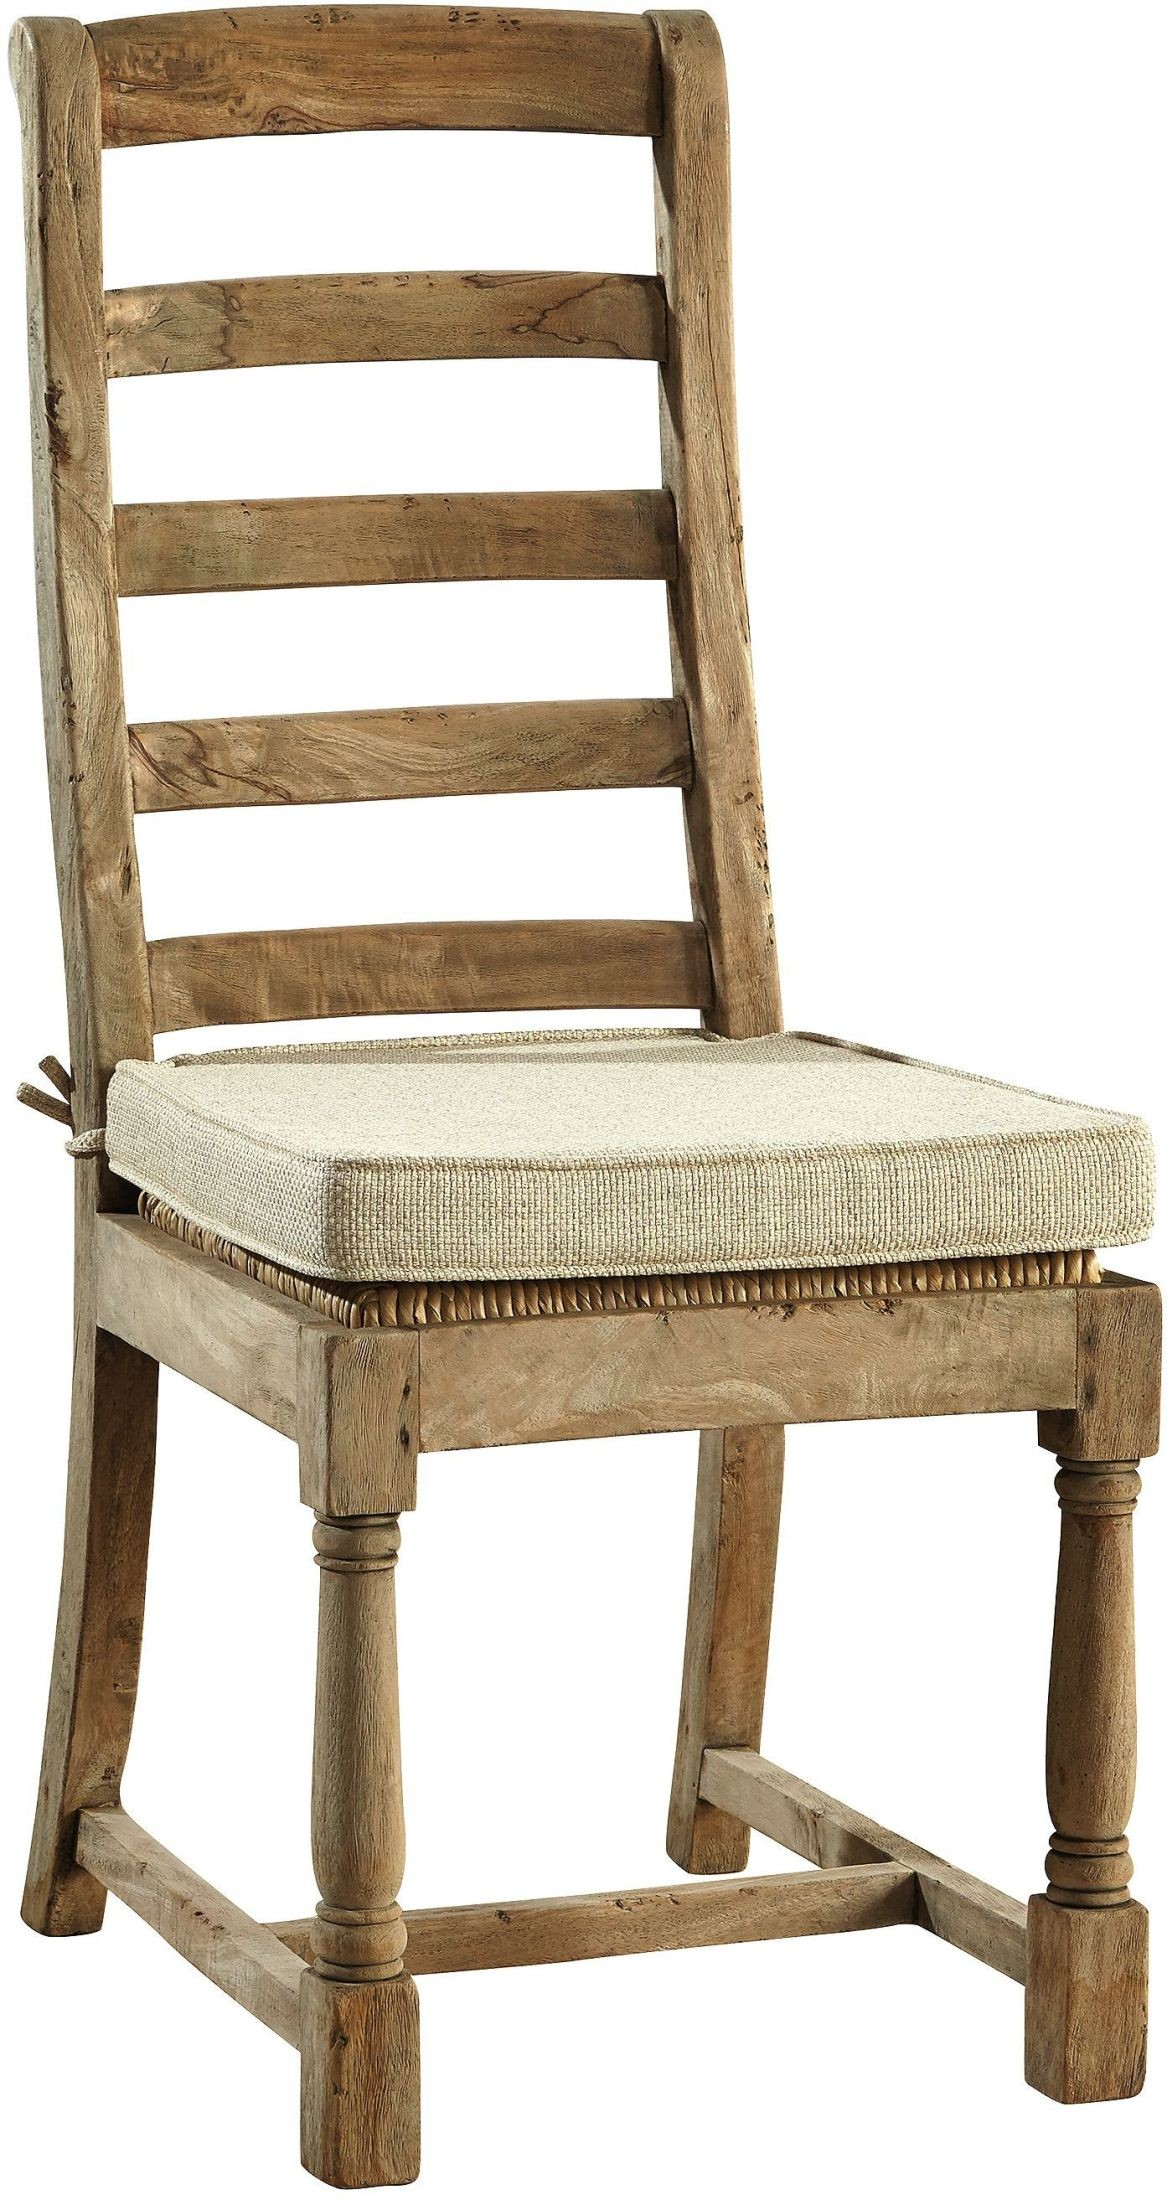 Driftwood Chair Mango Driftwood Side Chair Set Of 2 From Furniture